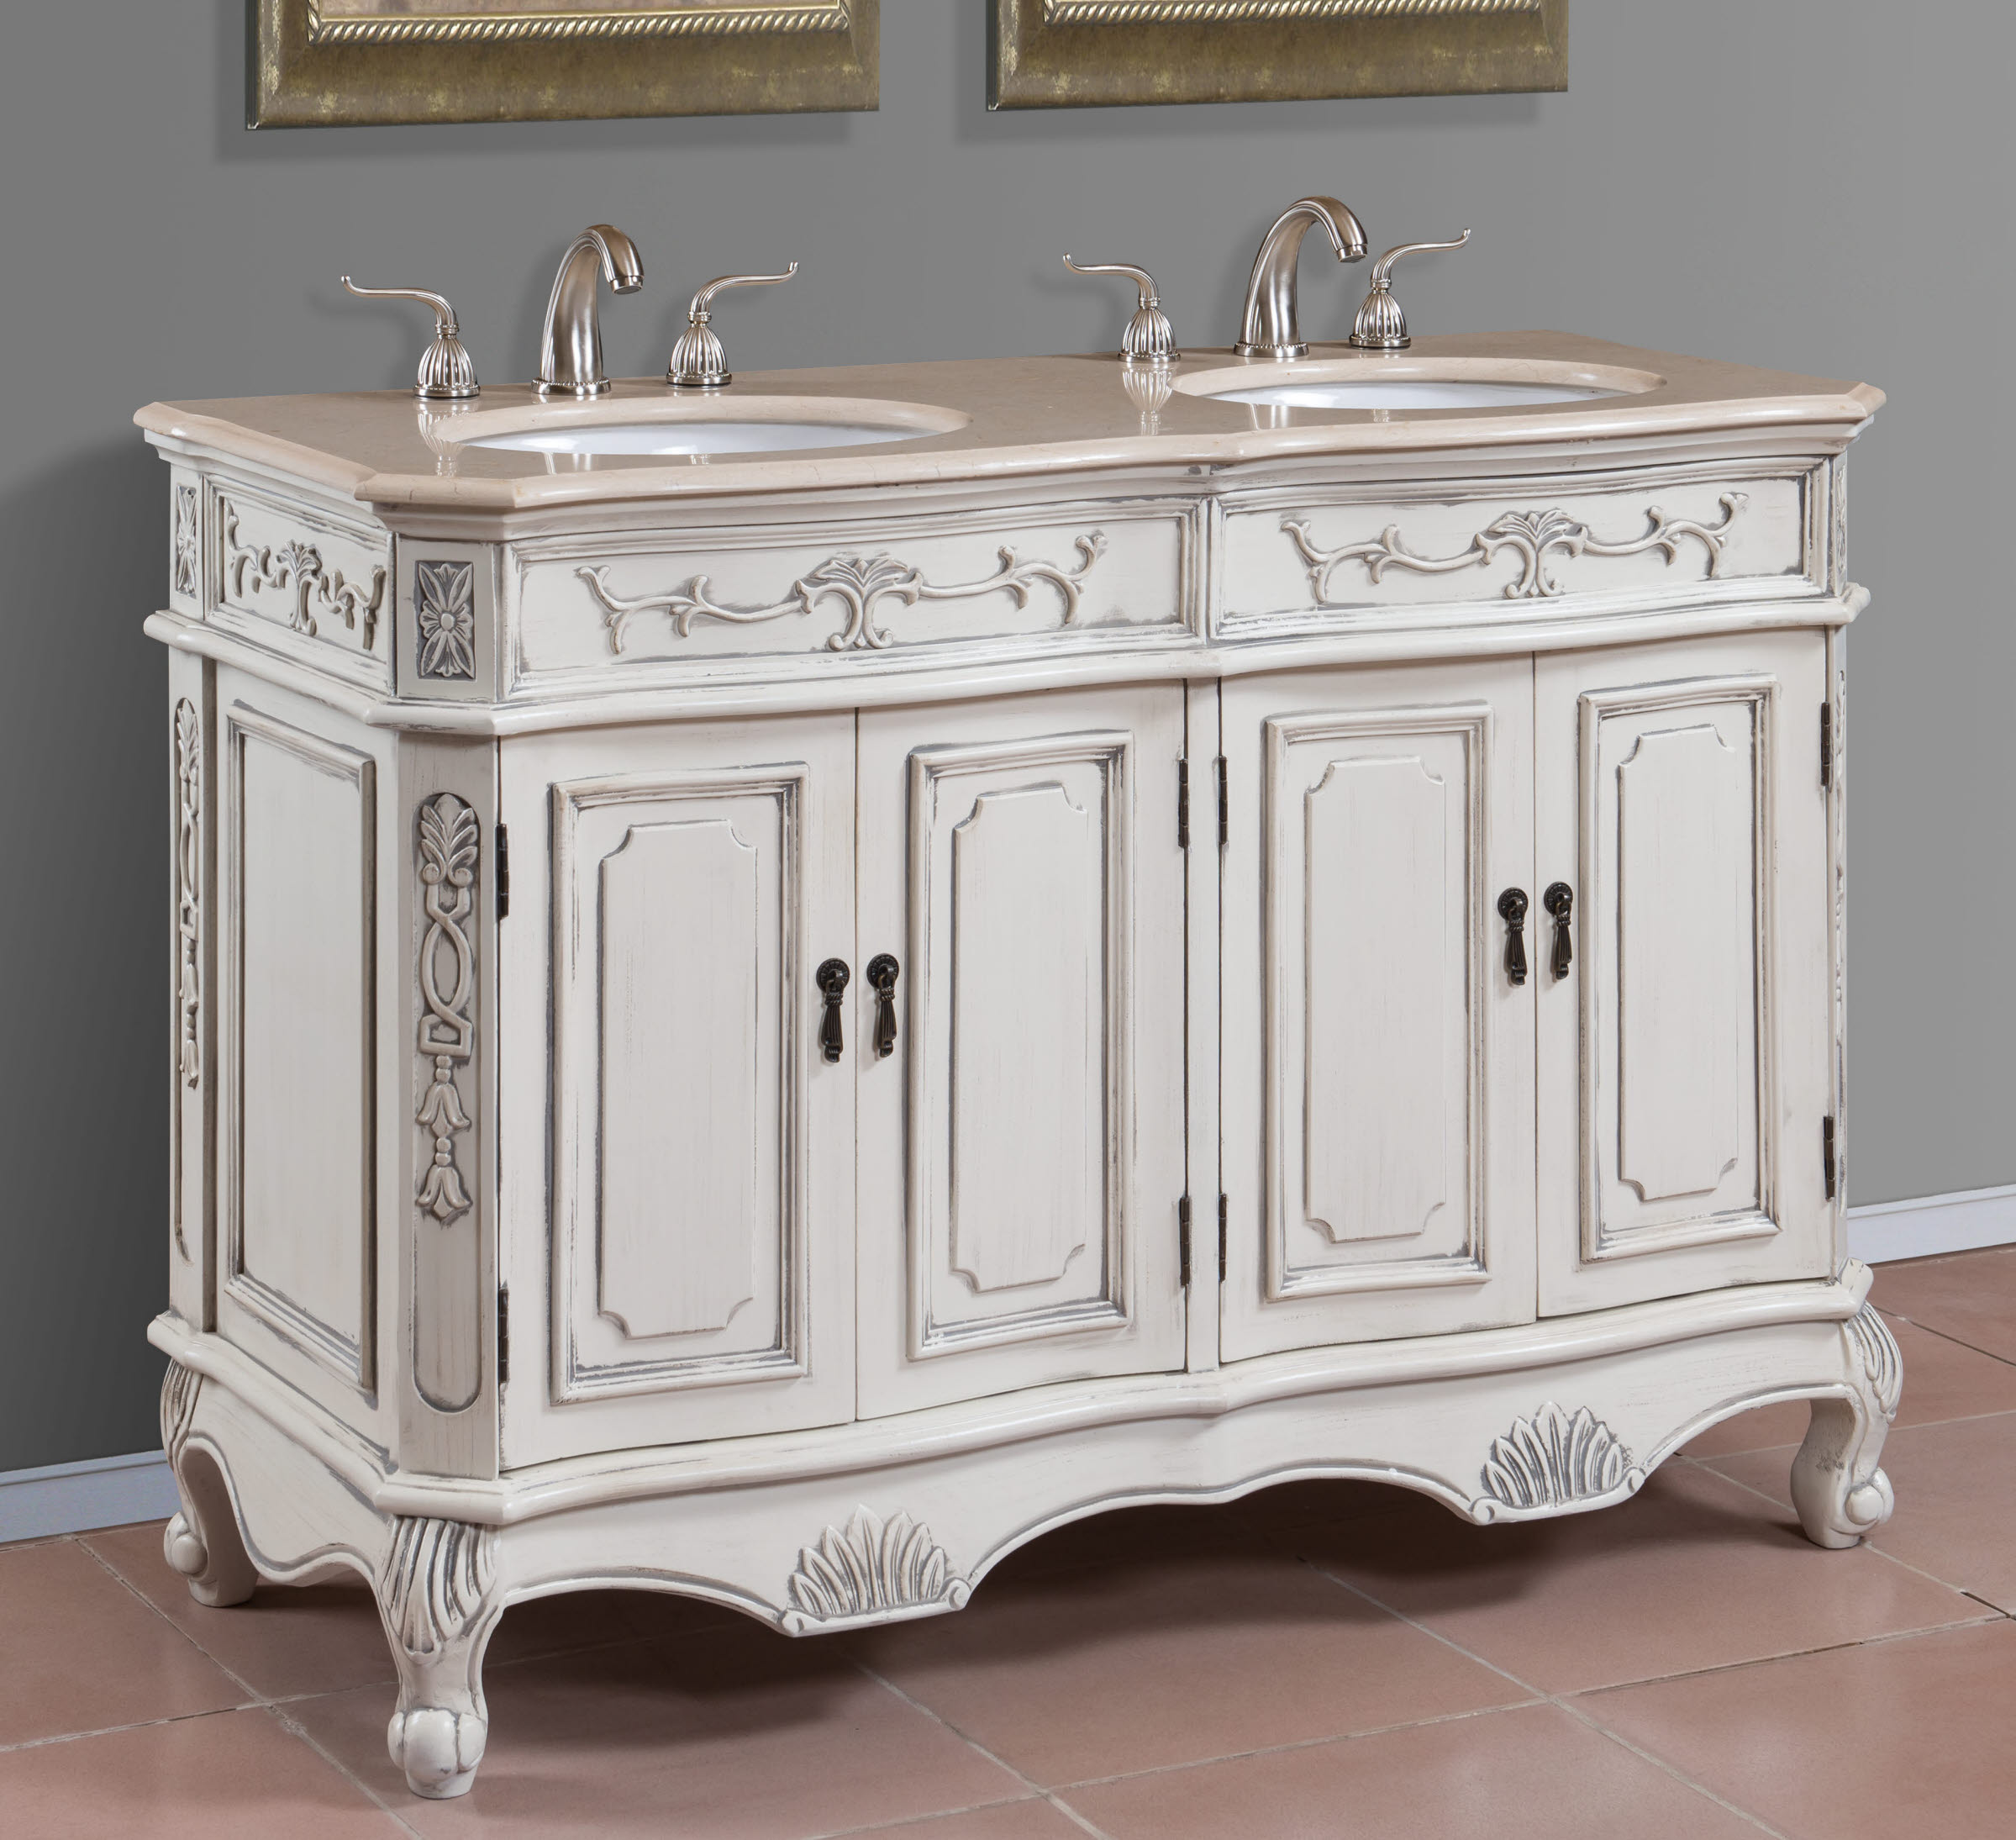 48 Inch Double Sink Bathroom Vanity | HomesFeed